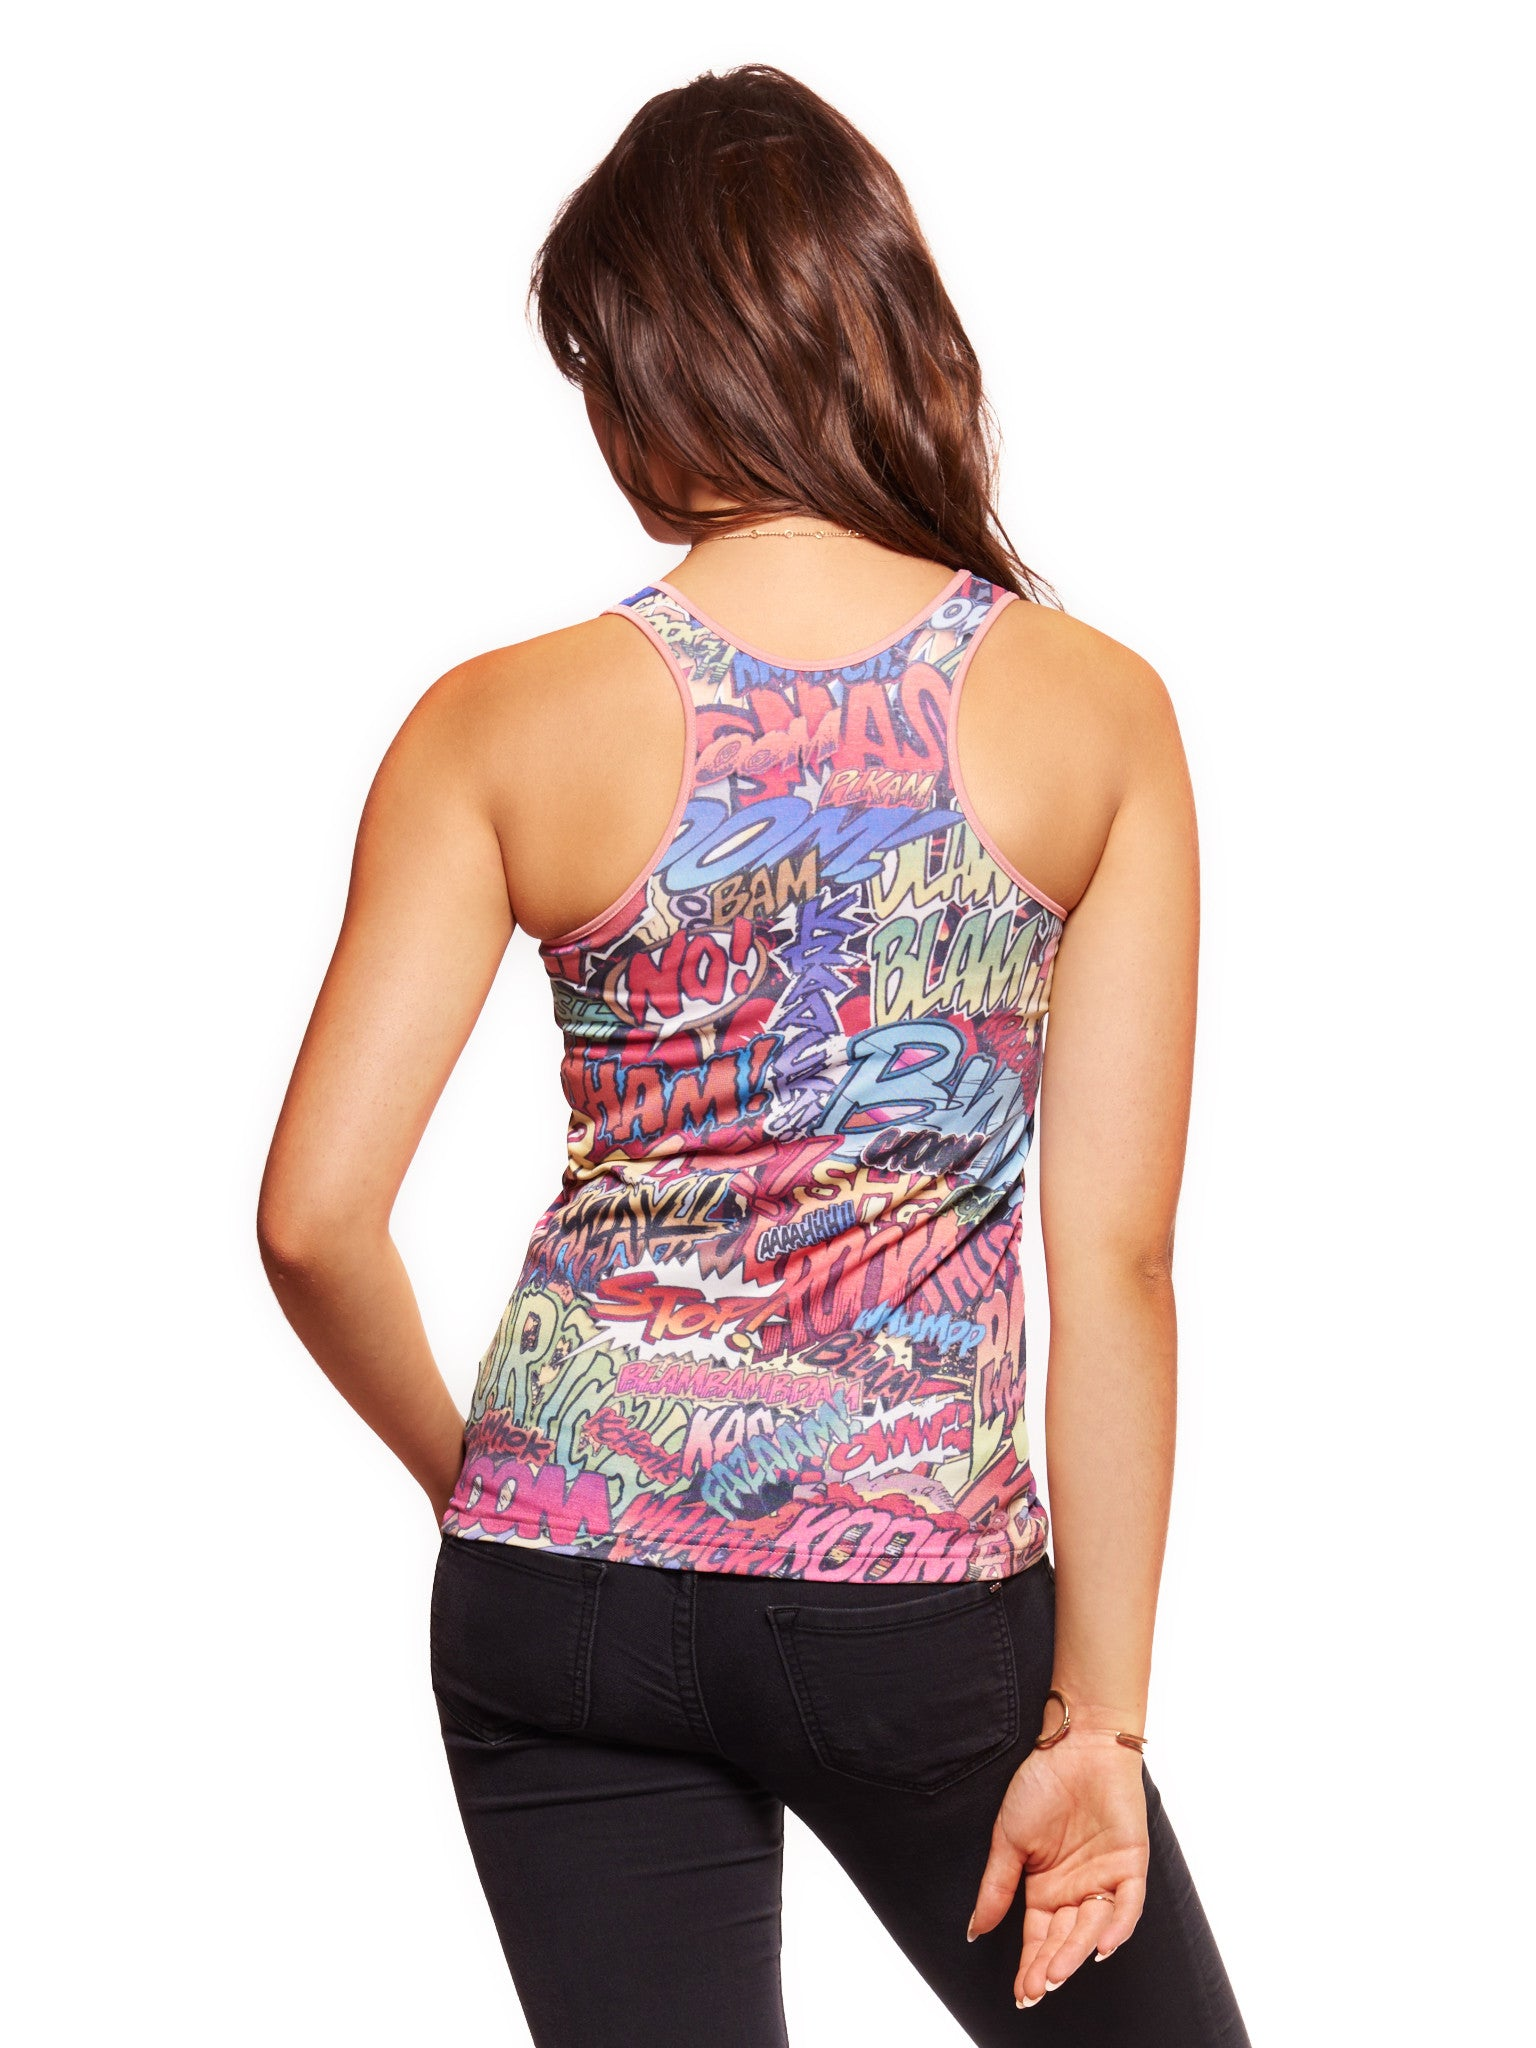 Action Packed Women's Trinity Tank - Nuvango Gallery & Goods - 2